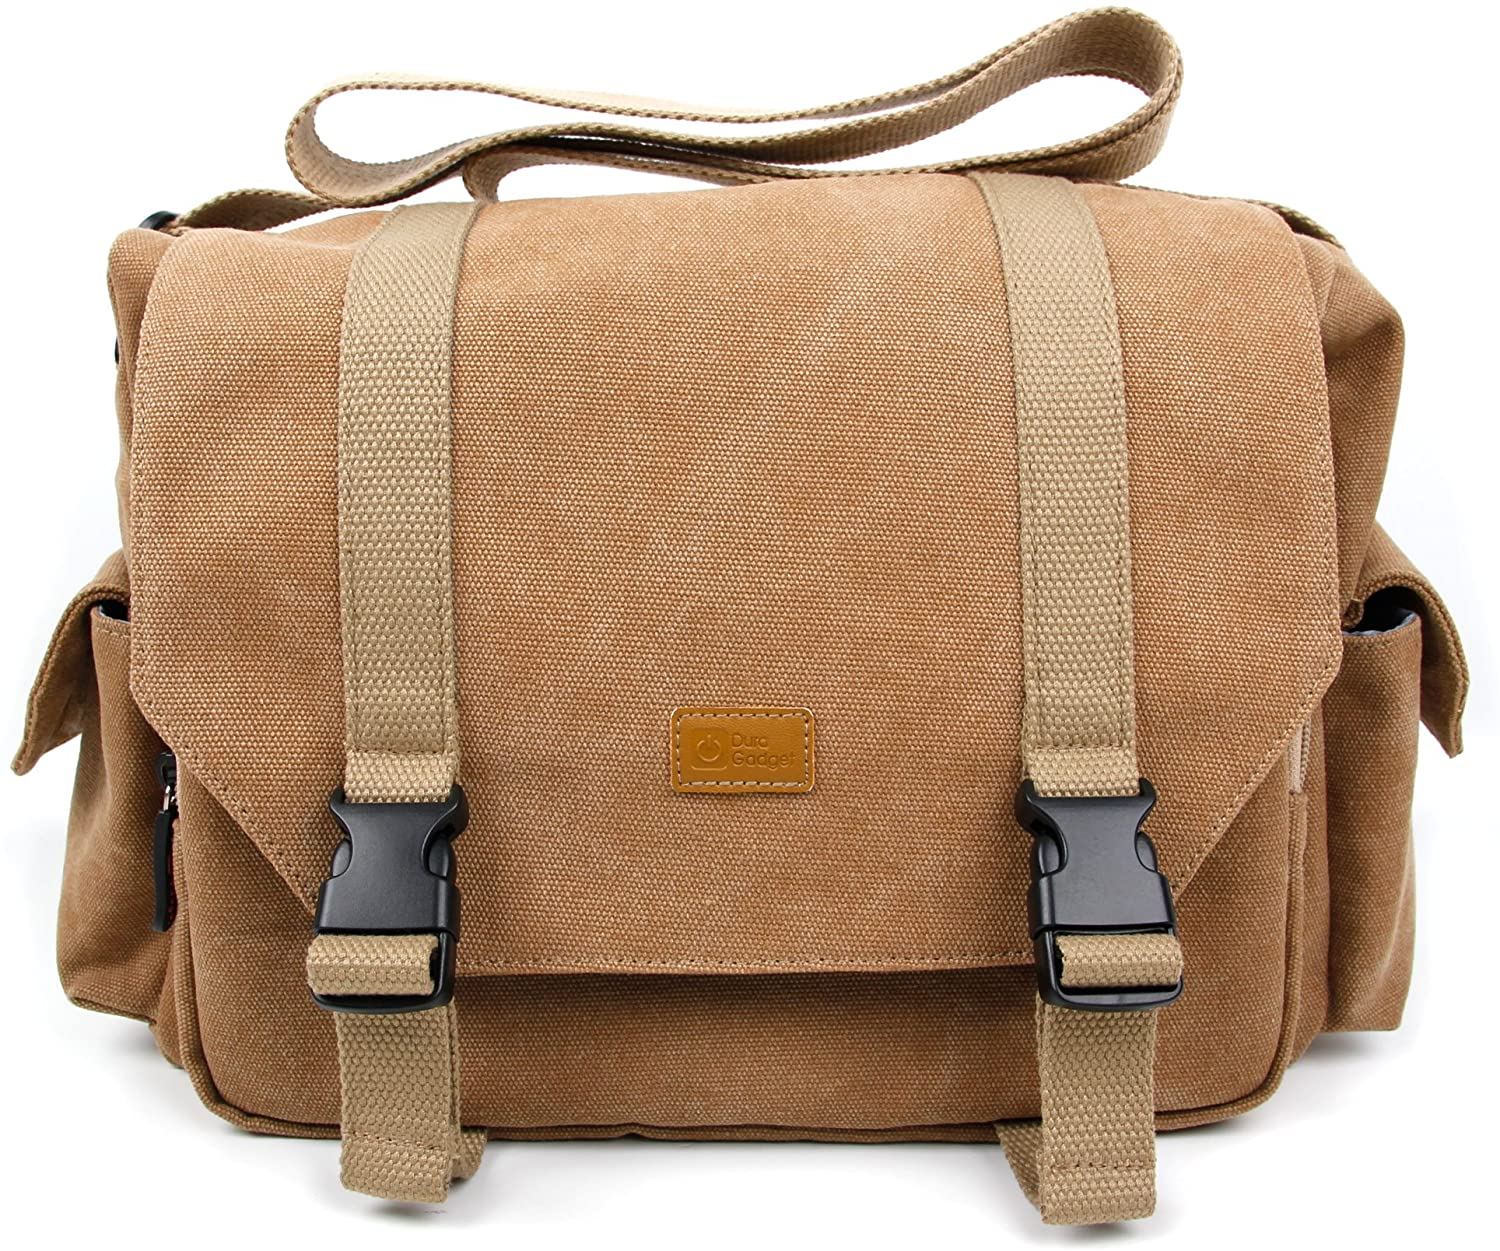 DURAGADGET Tan-Brown Large Sized Canvas Carry Bag with Multiple Pockets & Customizable Interior Compartment - Compatible with Zealot S7